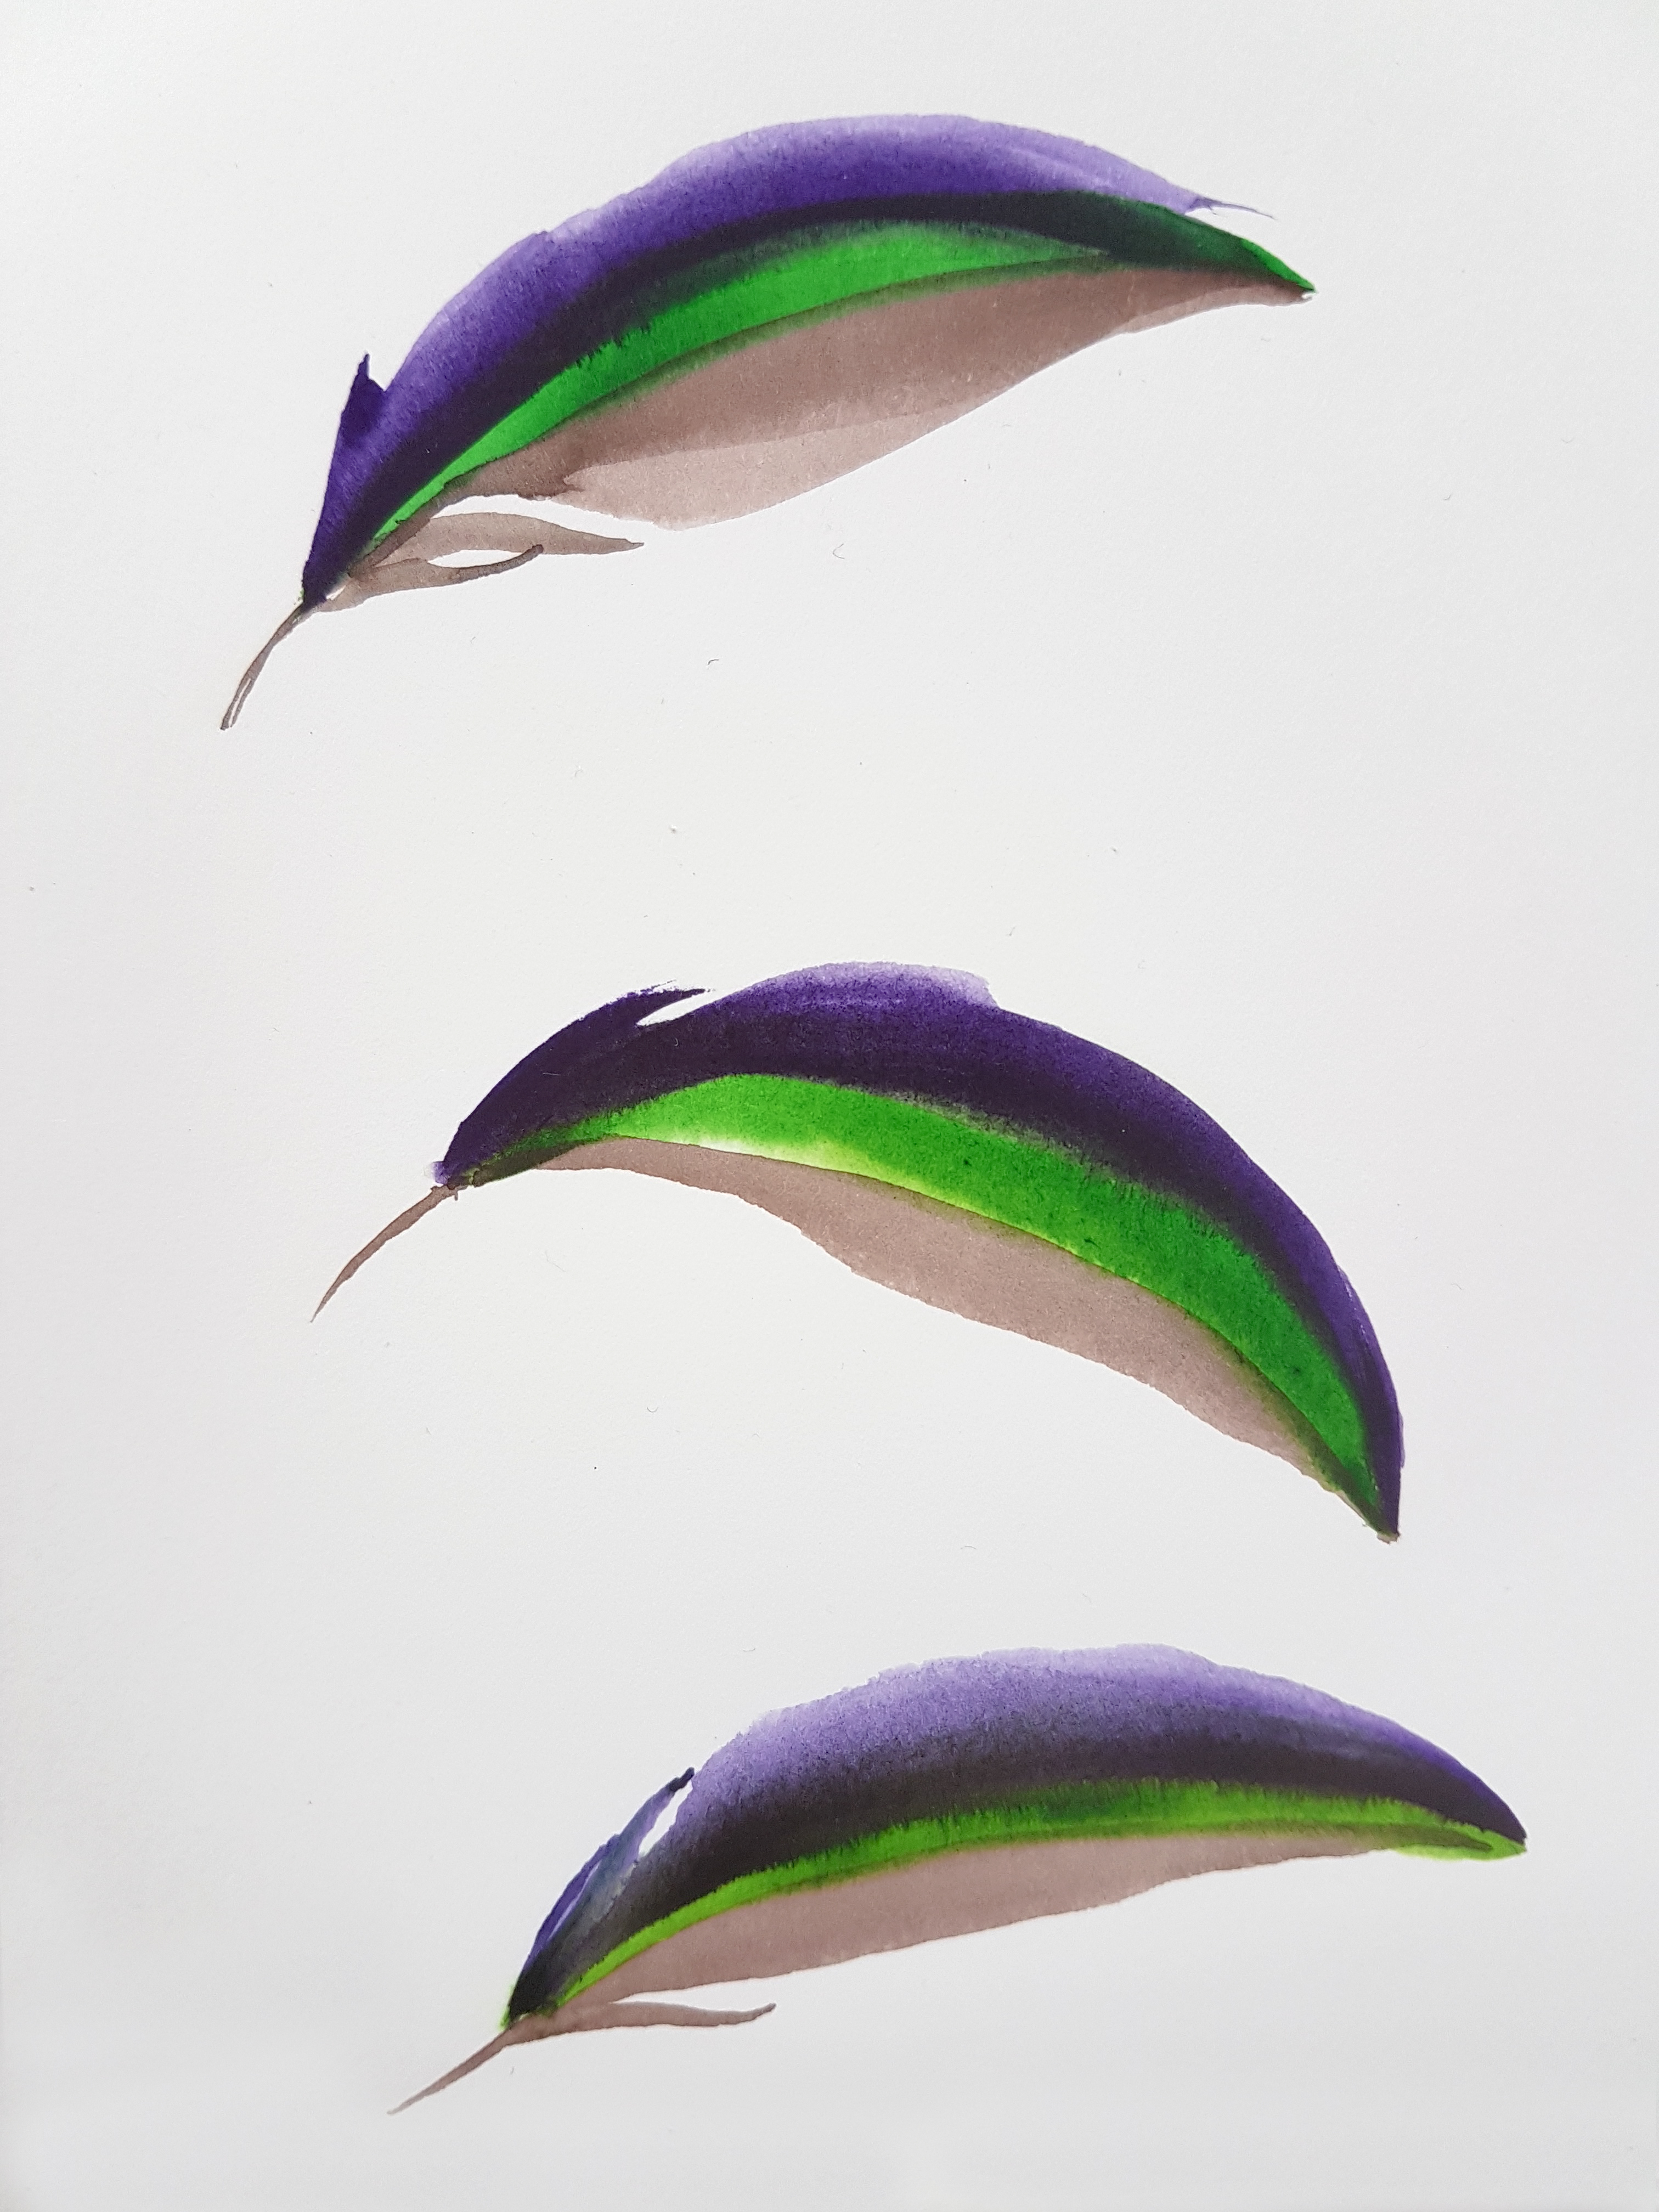 Study 2: Three Mallard Wing Feathers